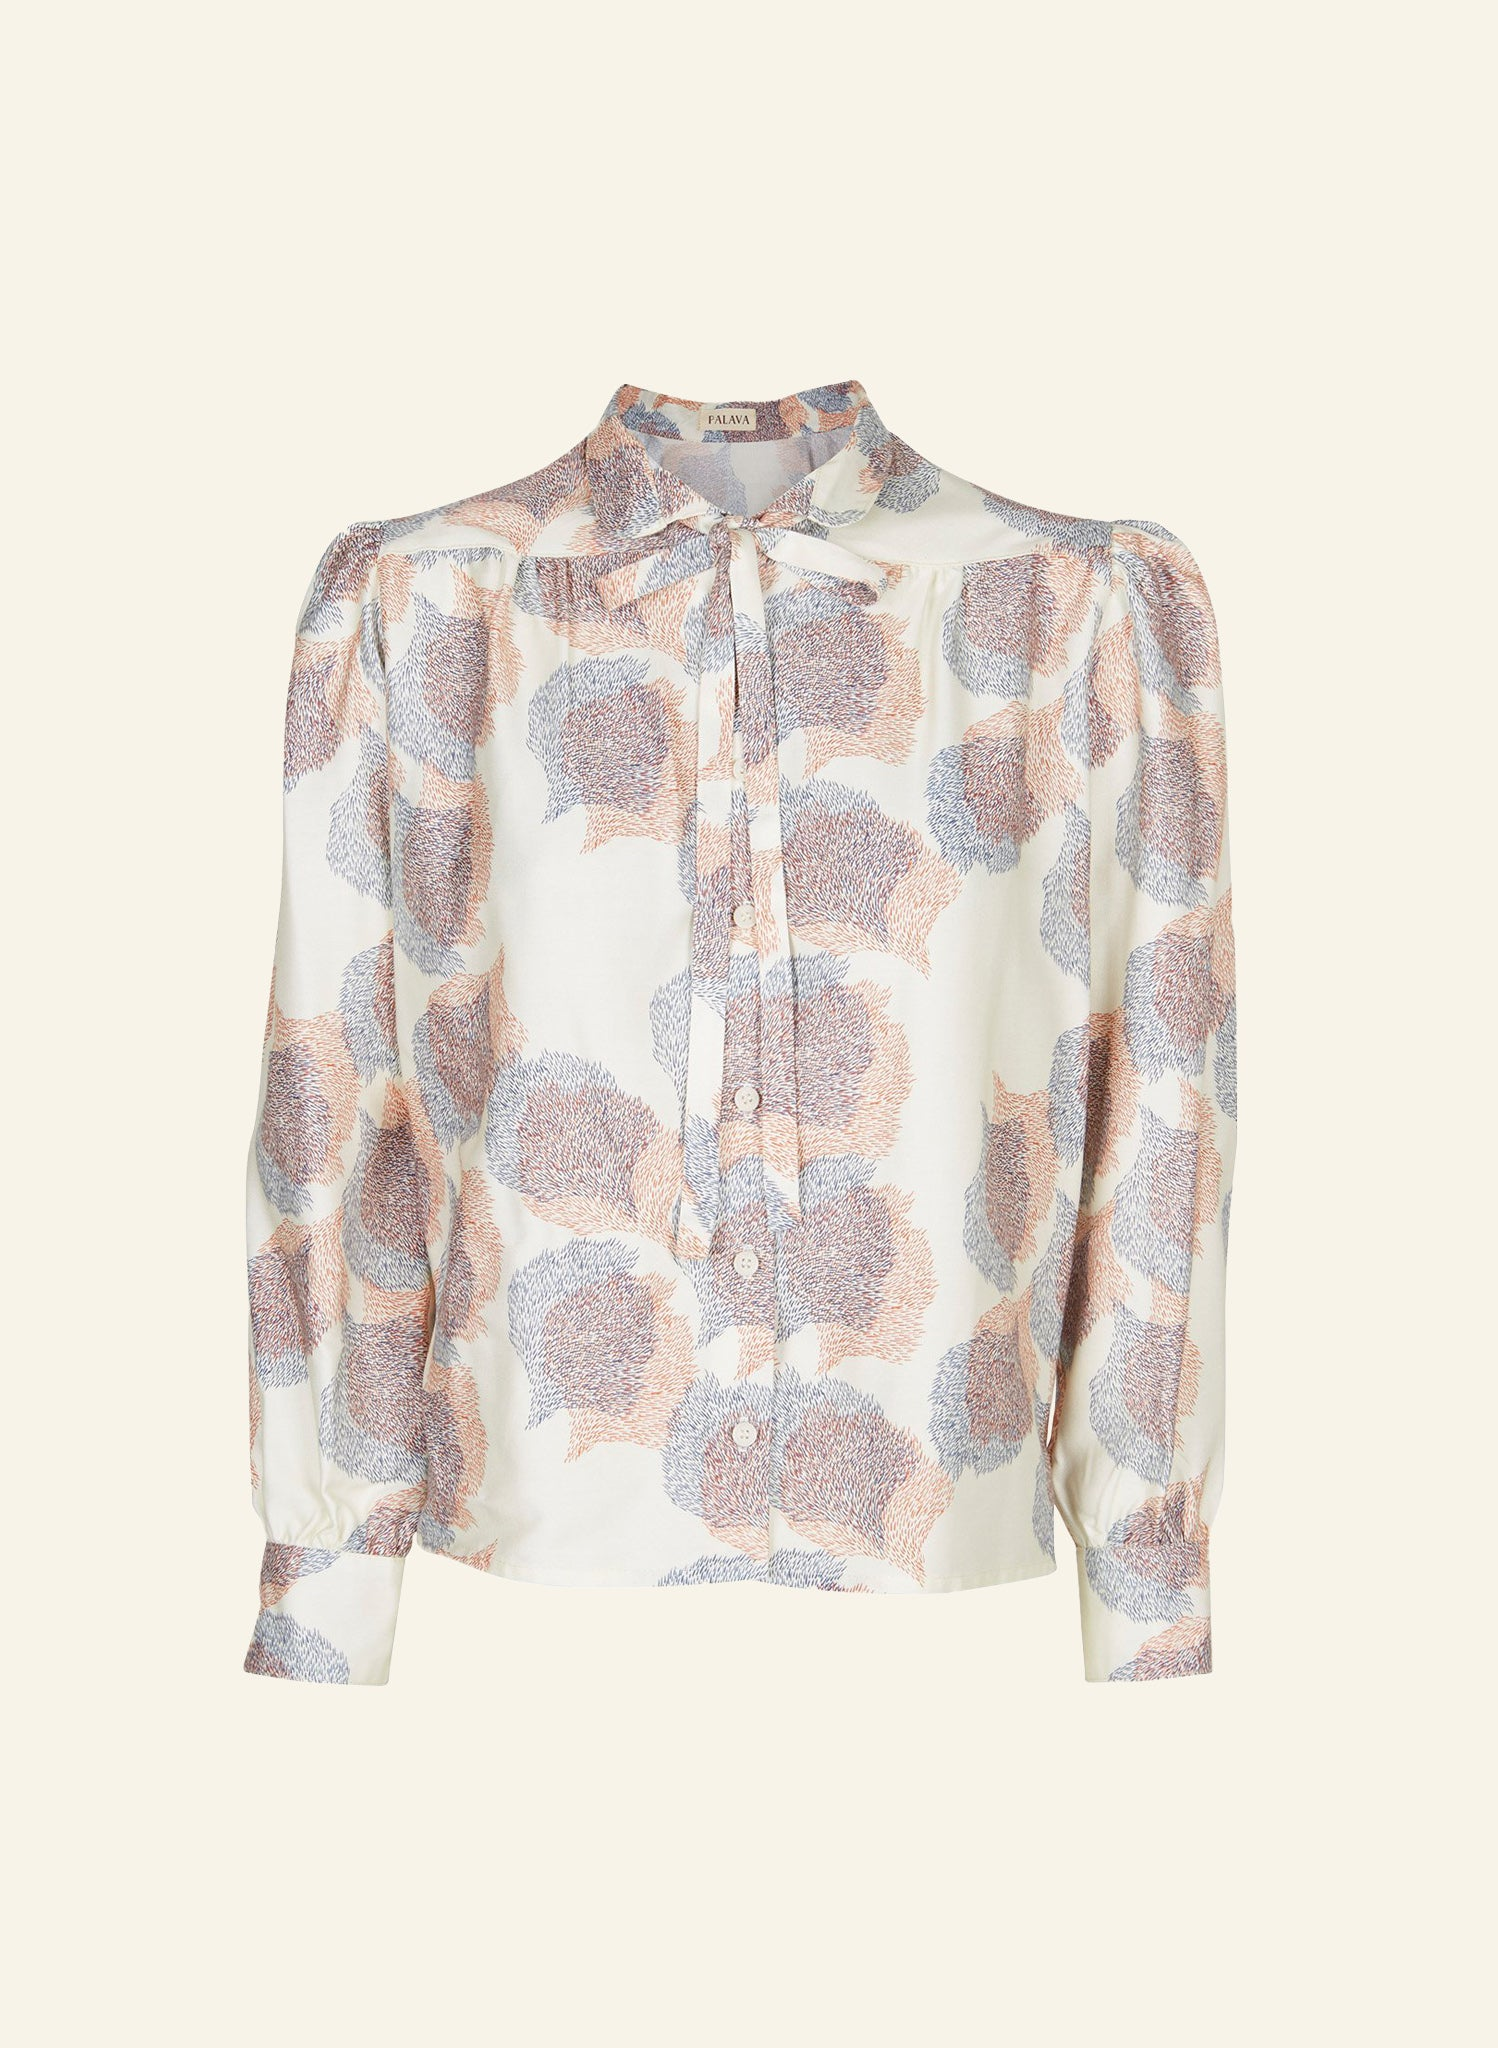 Anna - Ivory Migration Blouse - 100% Tencel